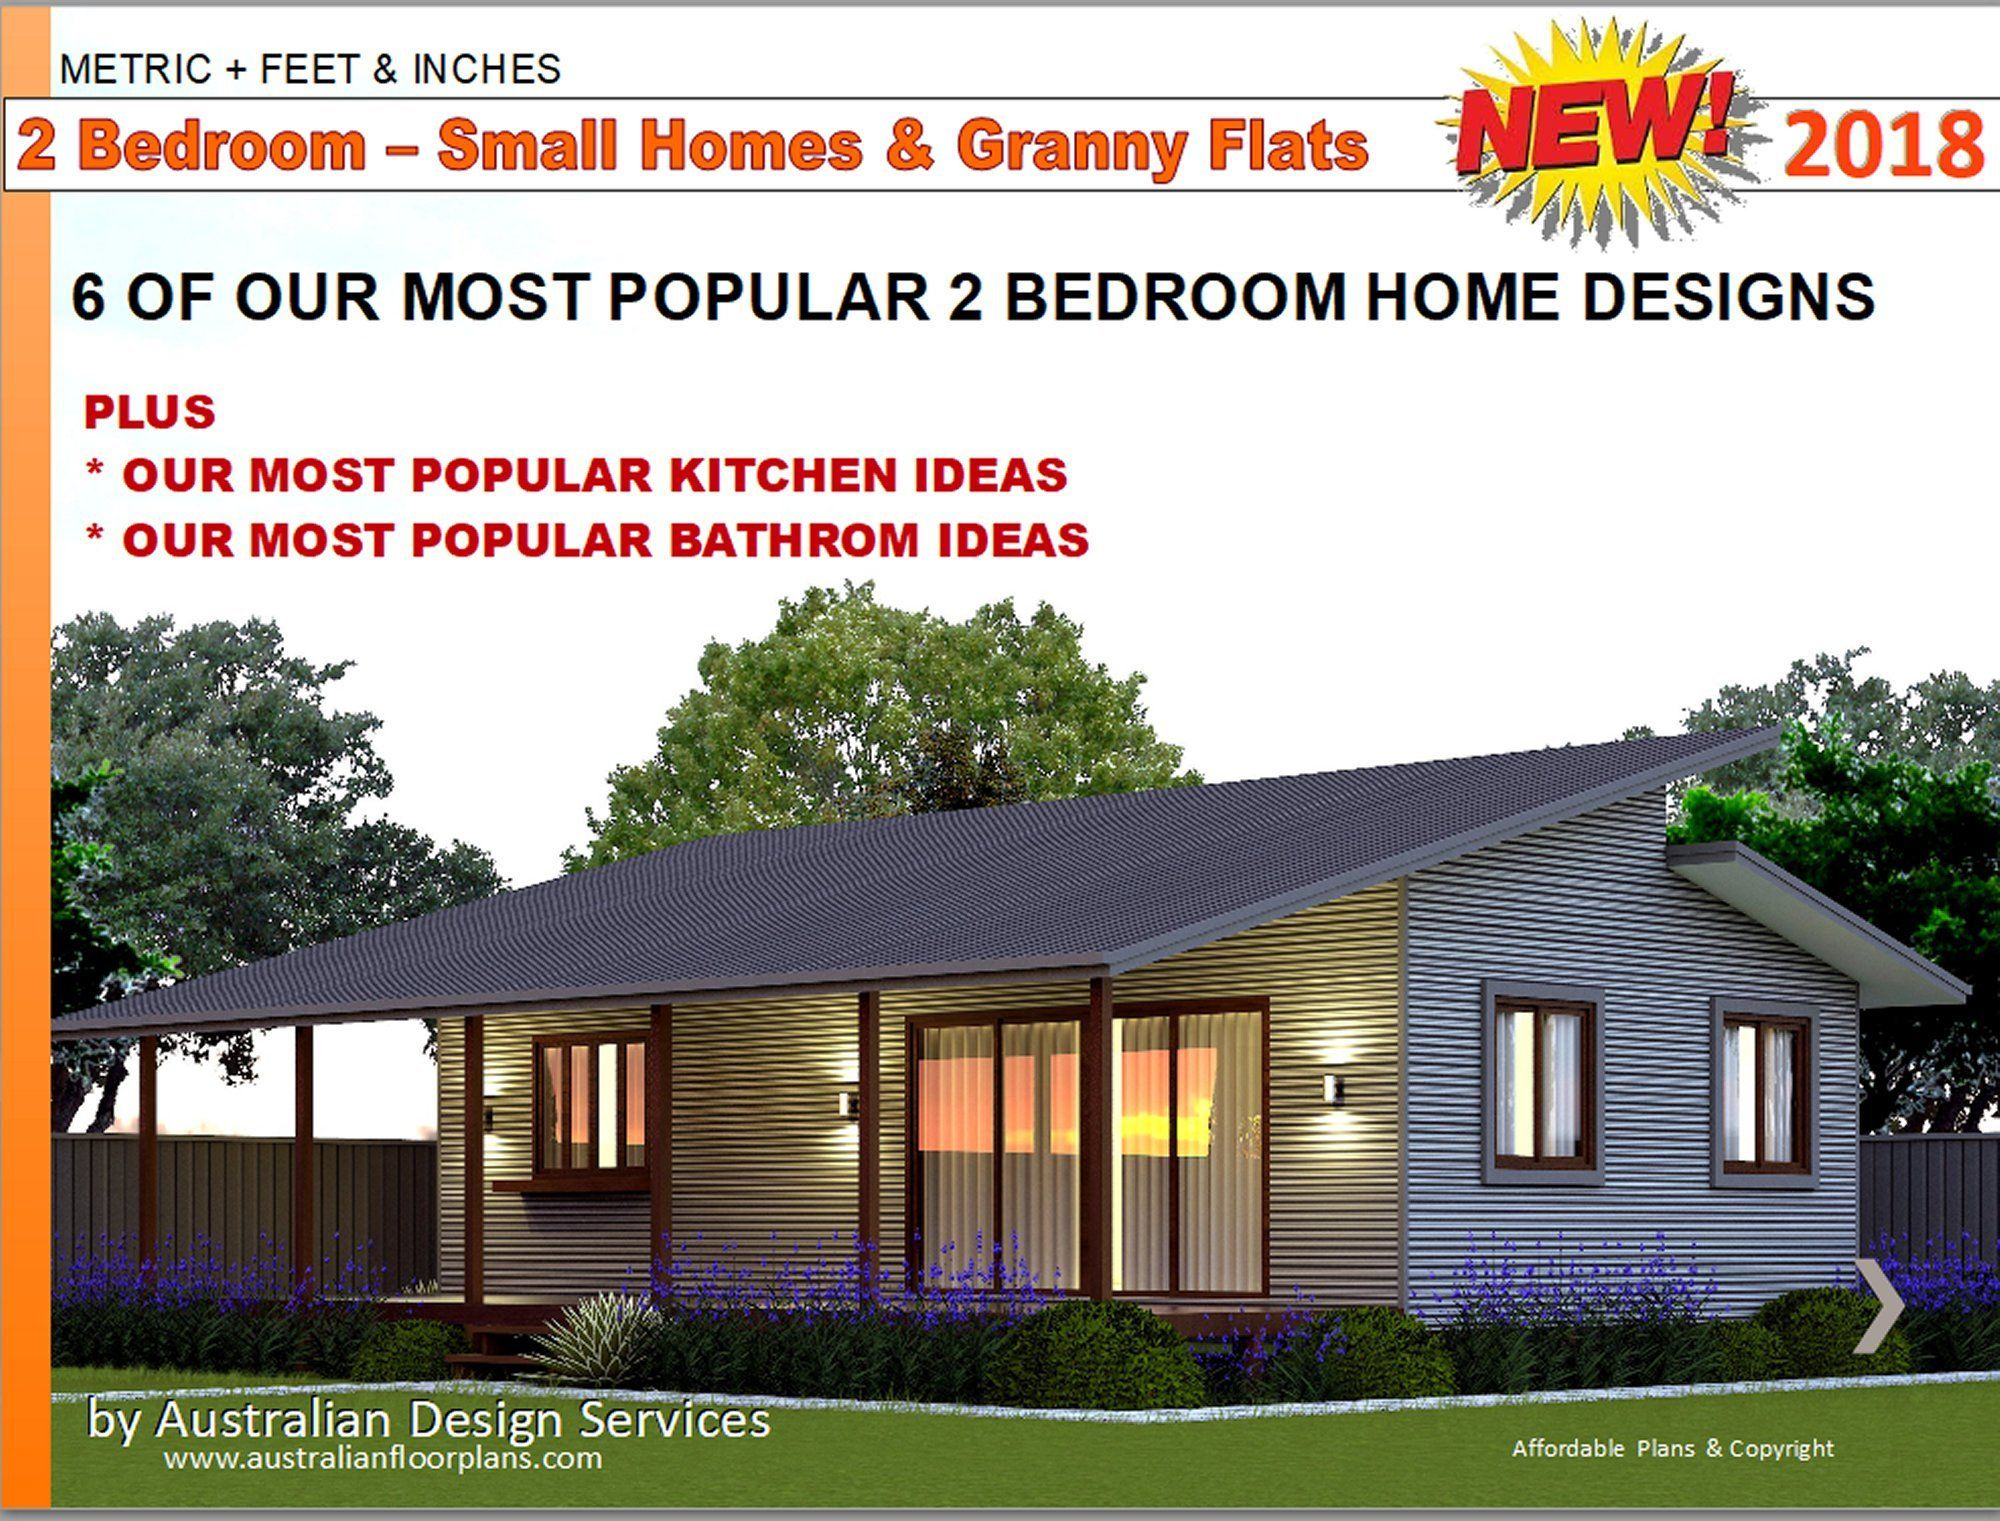 2 Bedroom House Designs Small Houses Granny Flats Home Etsy 2 Bedroom House Design Flat House Design Small House Design